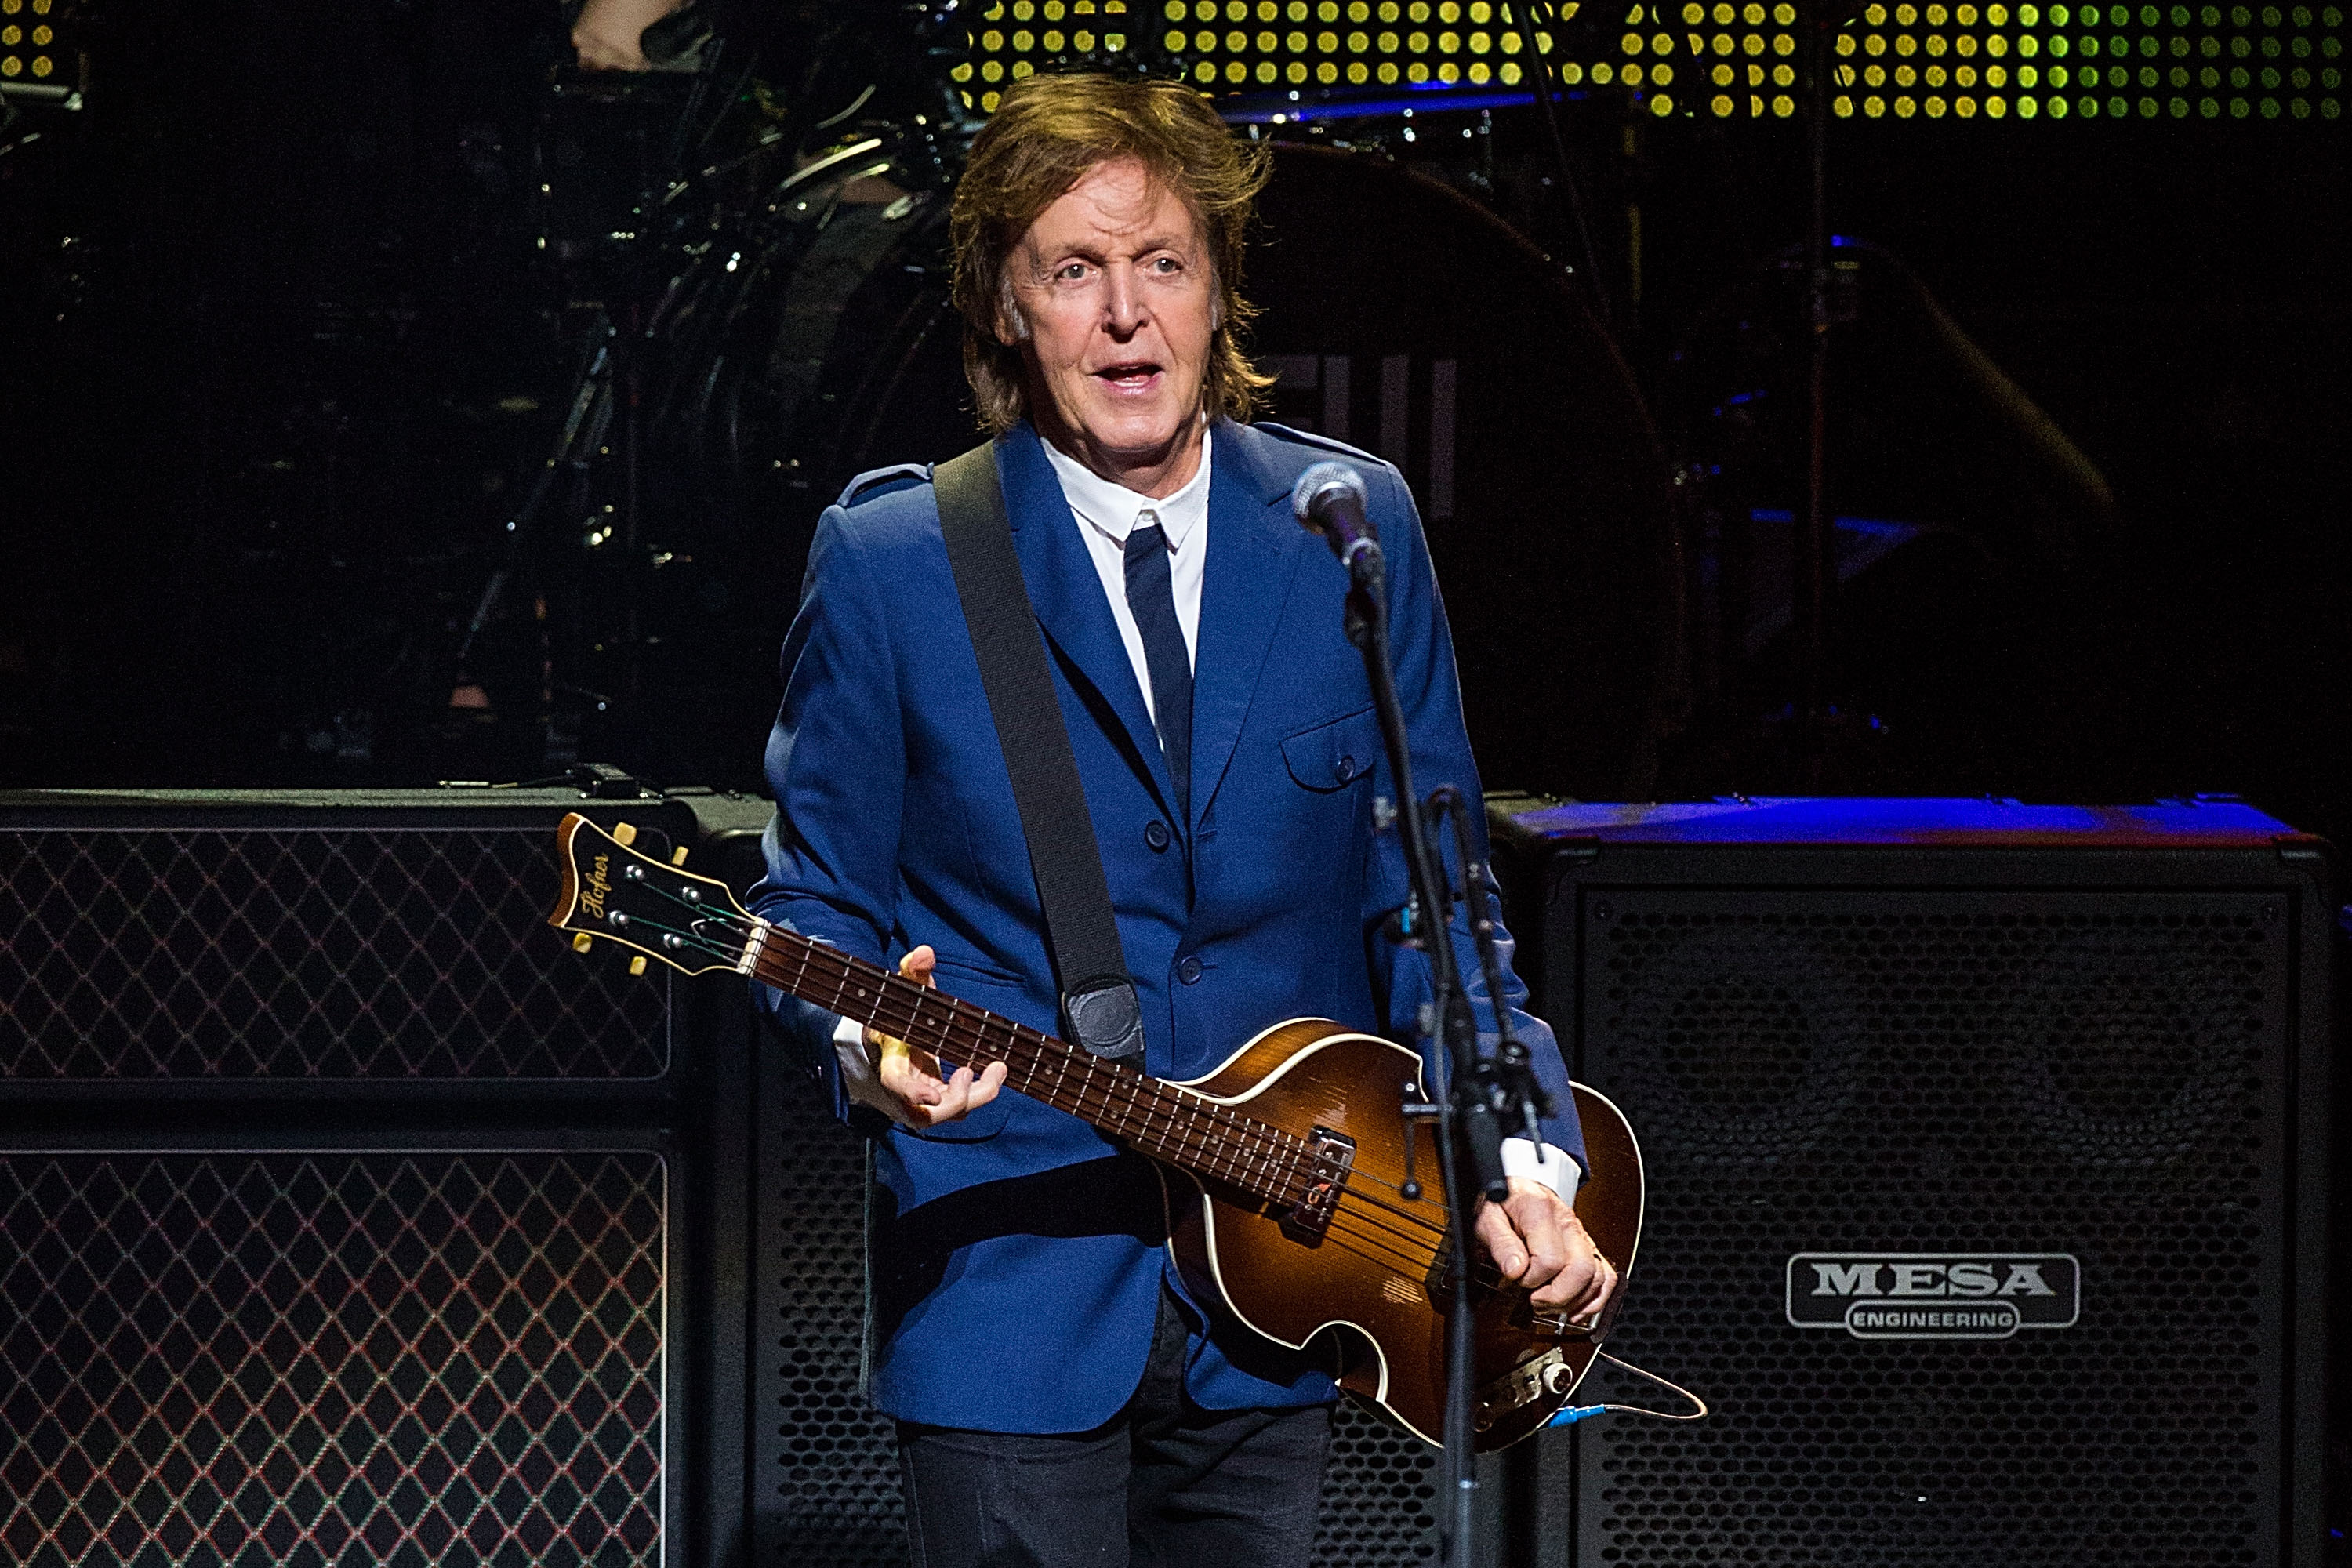 Paul McCartney Pondering Song About Eric Garner Protests